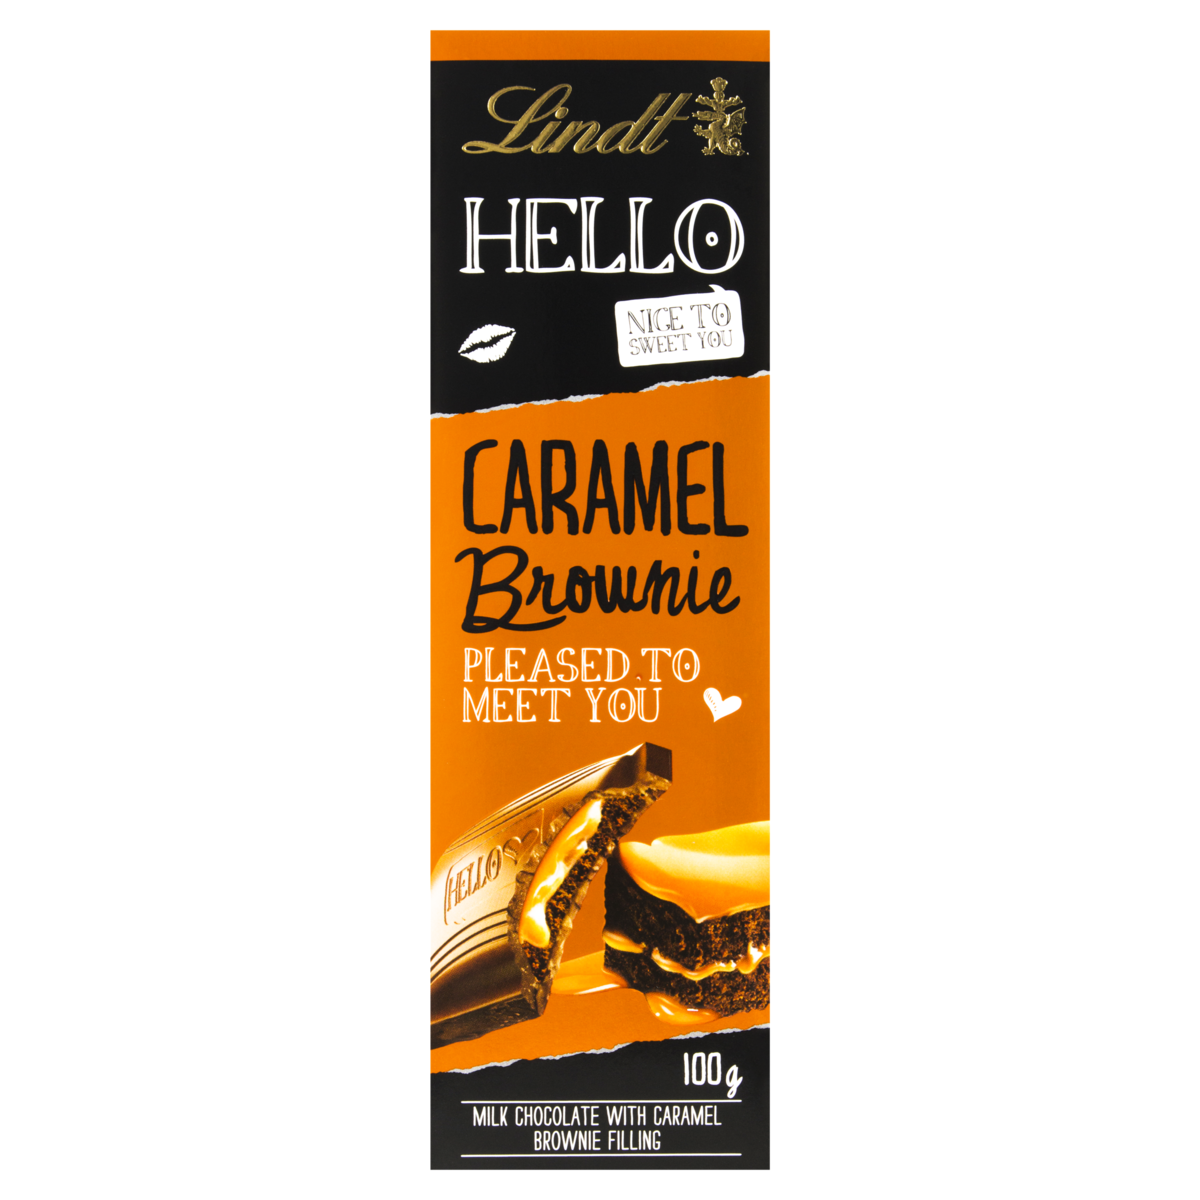 4000539222009 - BARRA DE CHOCOLATE HELLO CARAMEL AND BROWNIE LINDT